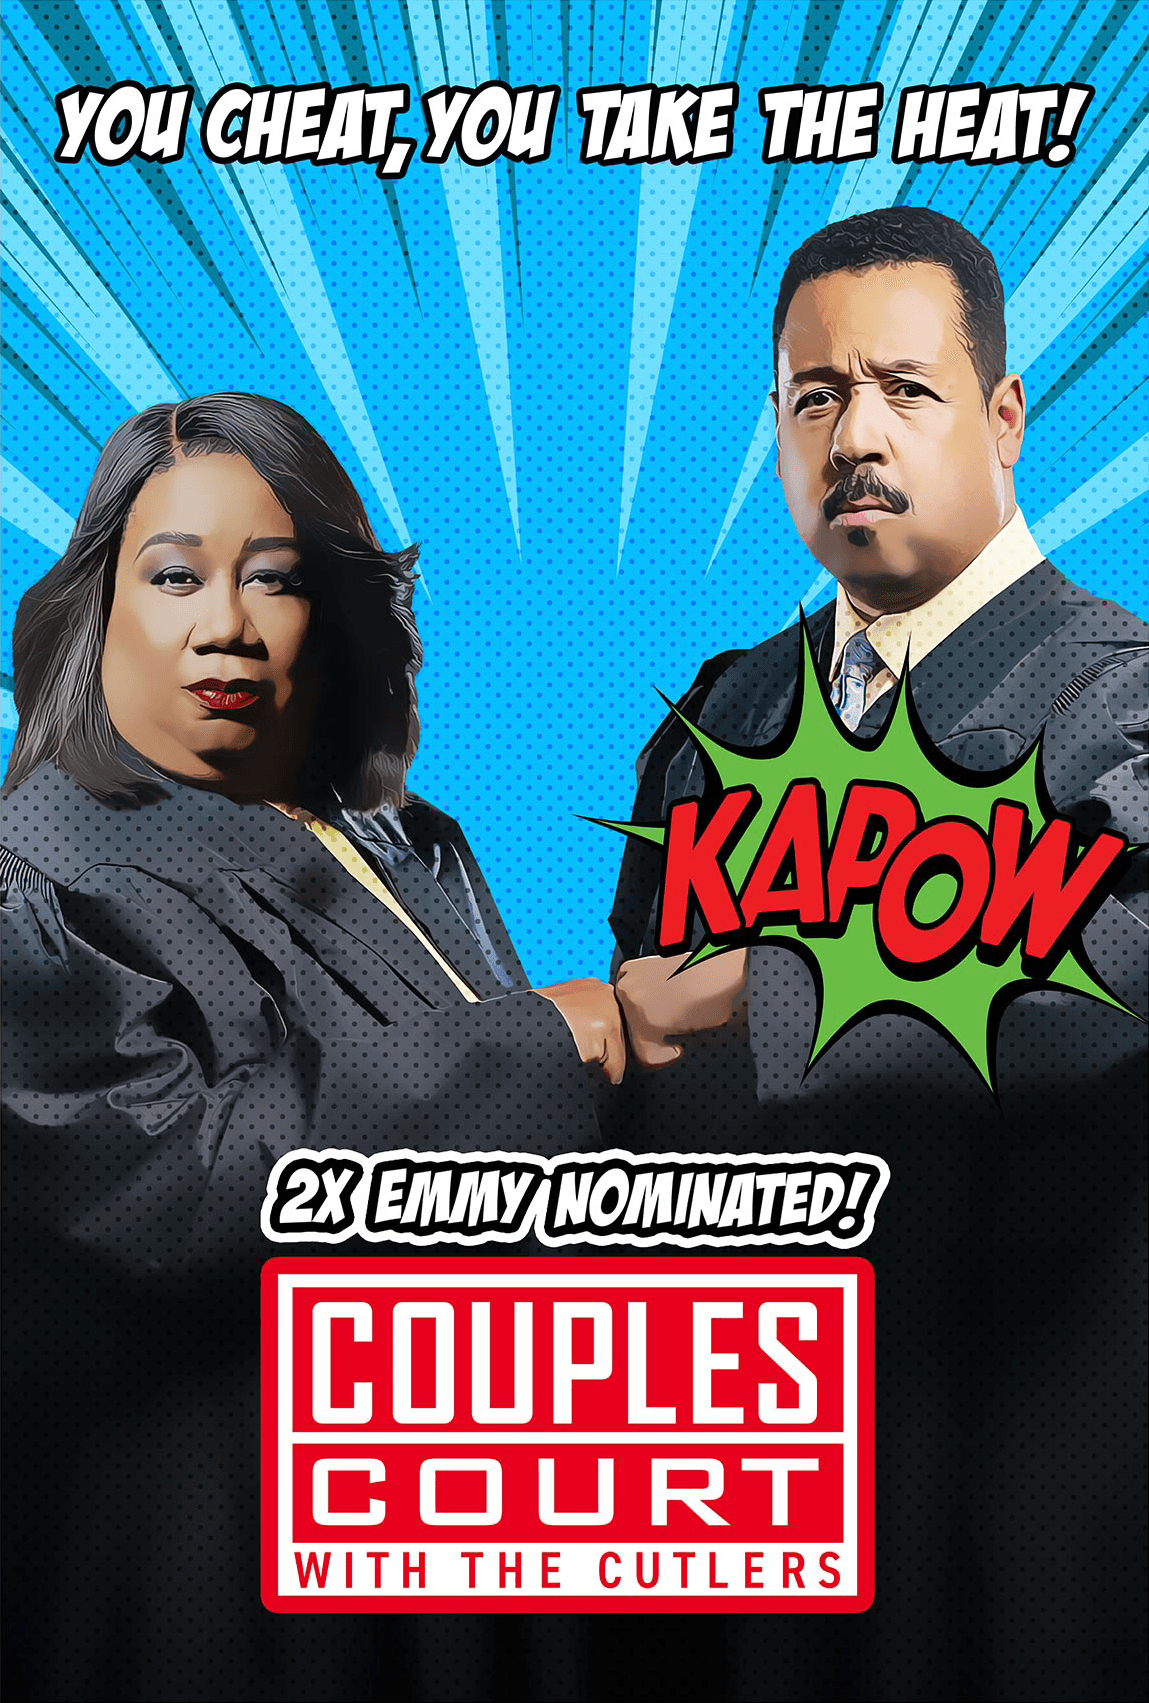 2x Emmy Nominated! Couples Court with the Cutlers